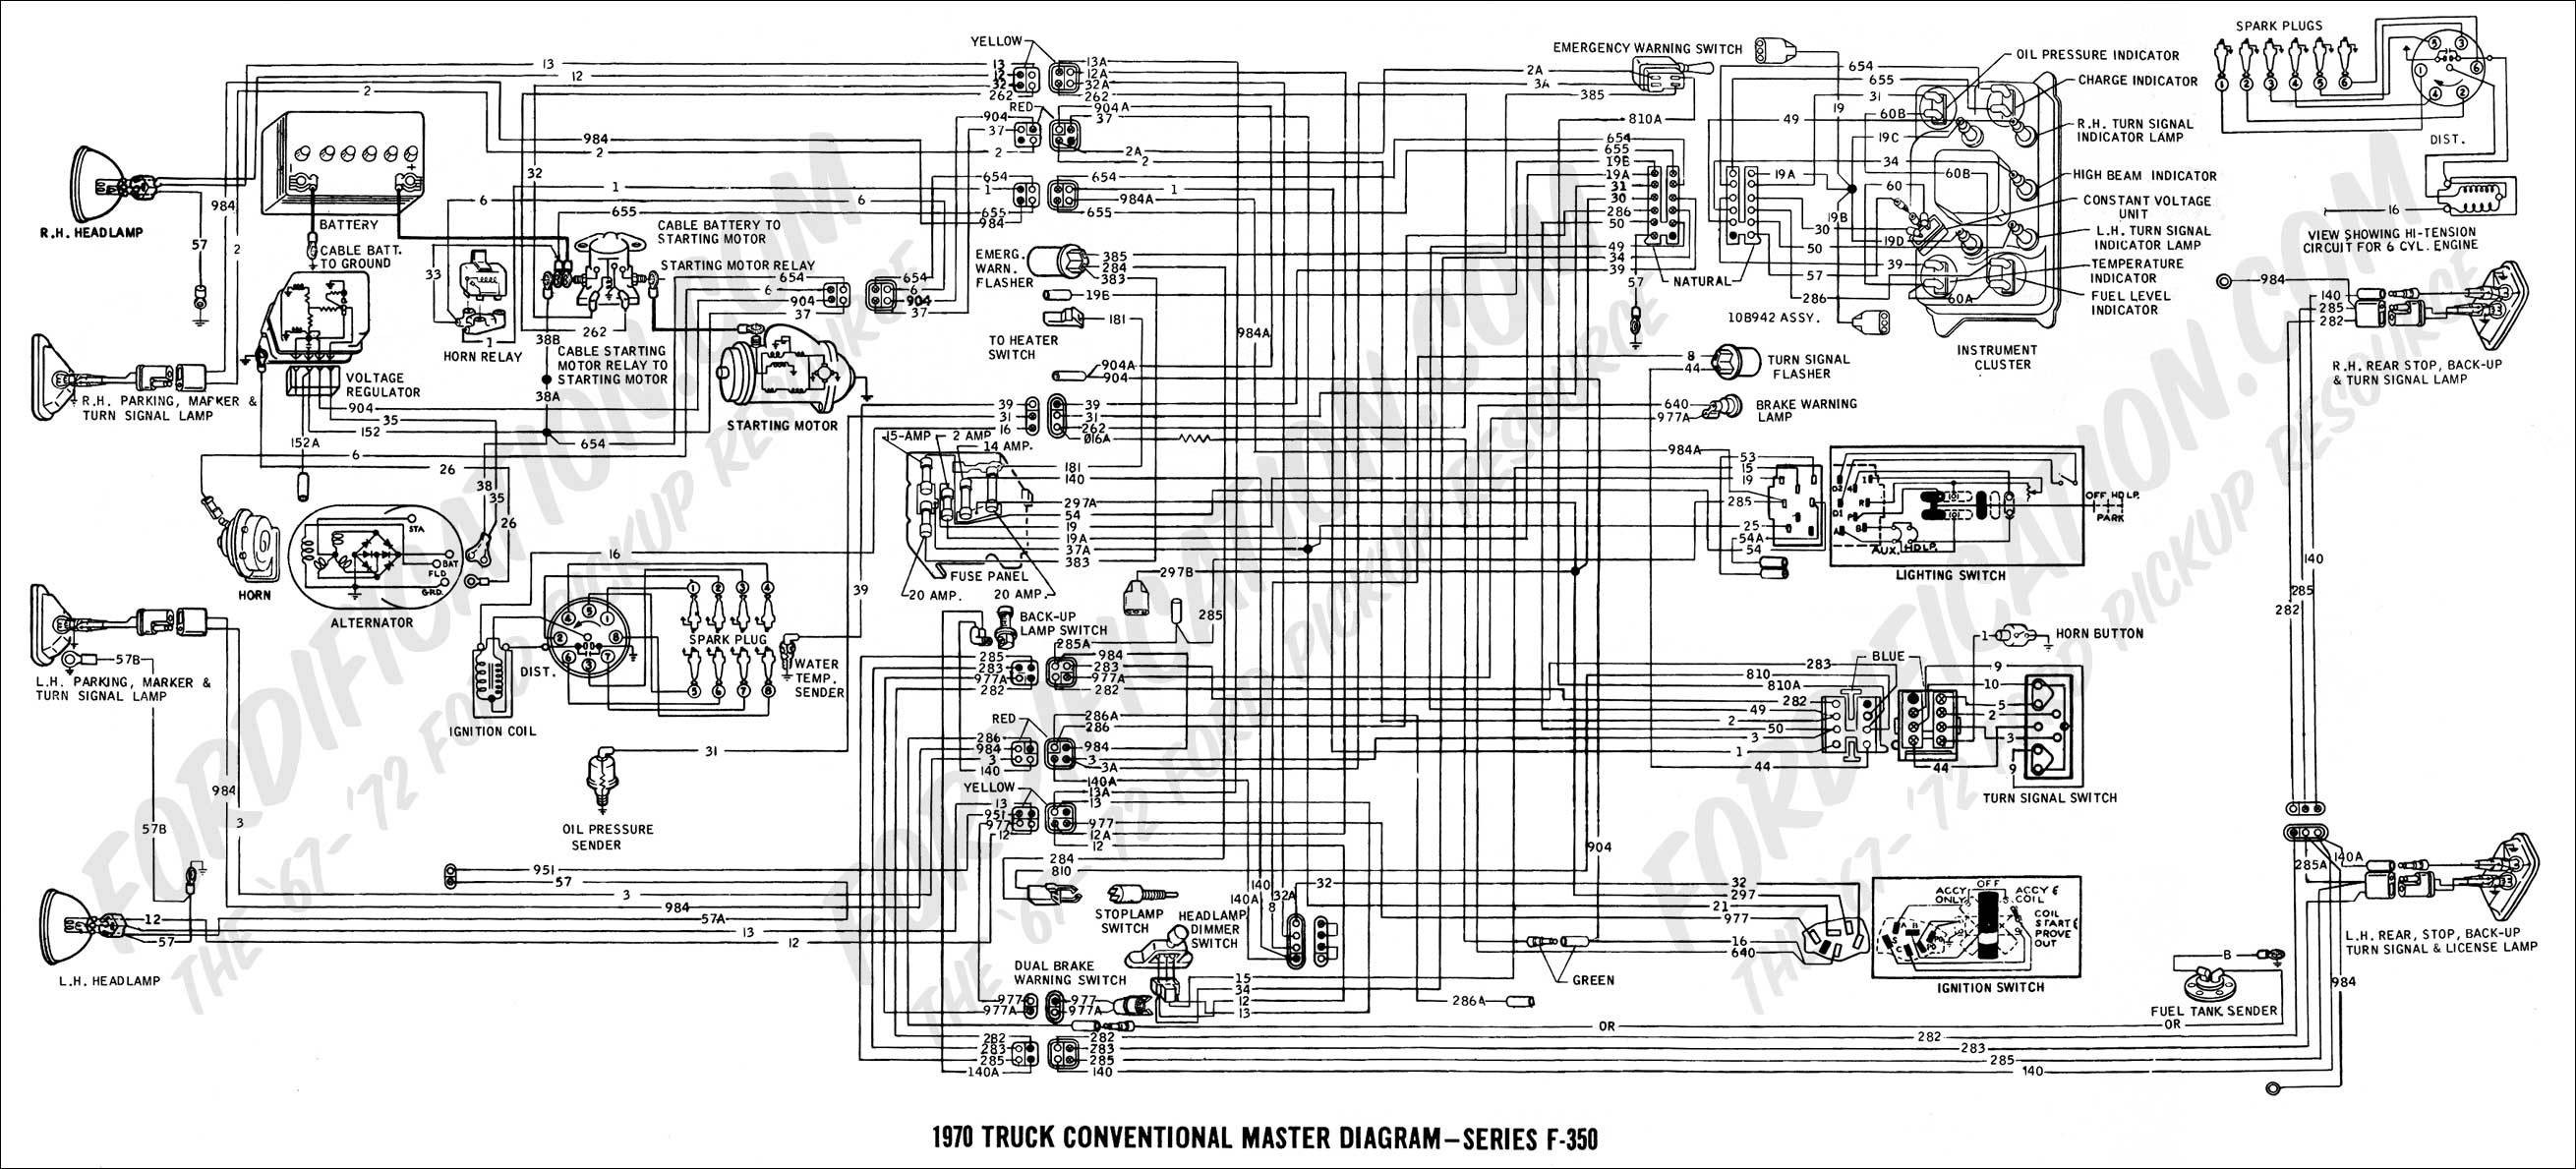 2010 ford F150 Wiring Diagram Bucket 2002 F350 Superduty Electrical Wiring  Diagrams Wiring Info • Of